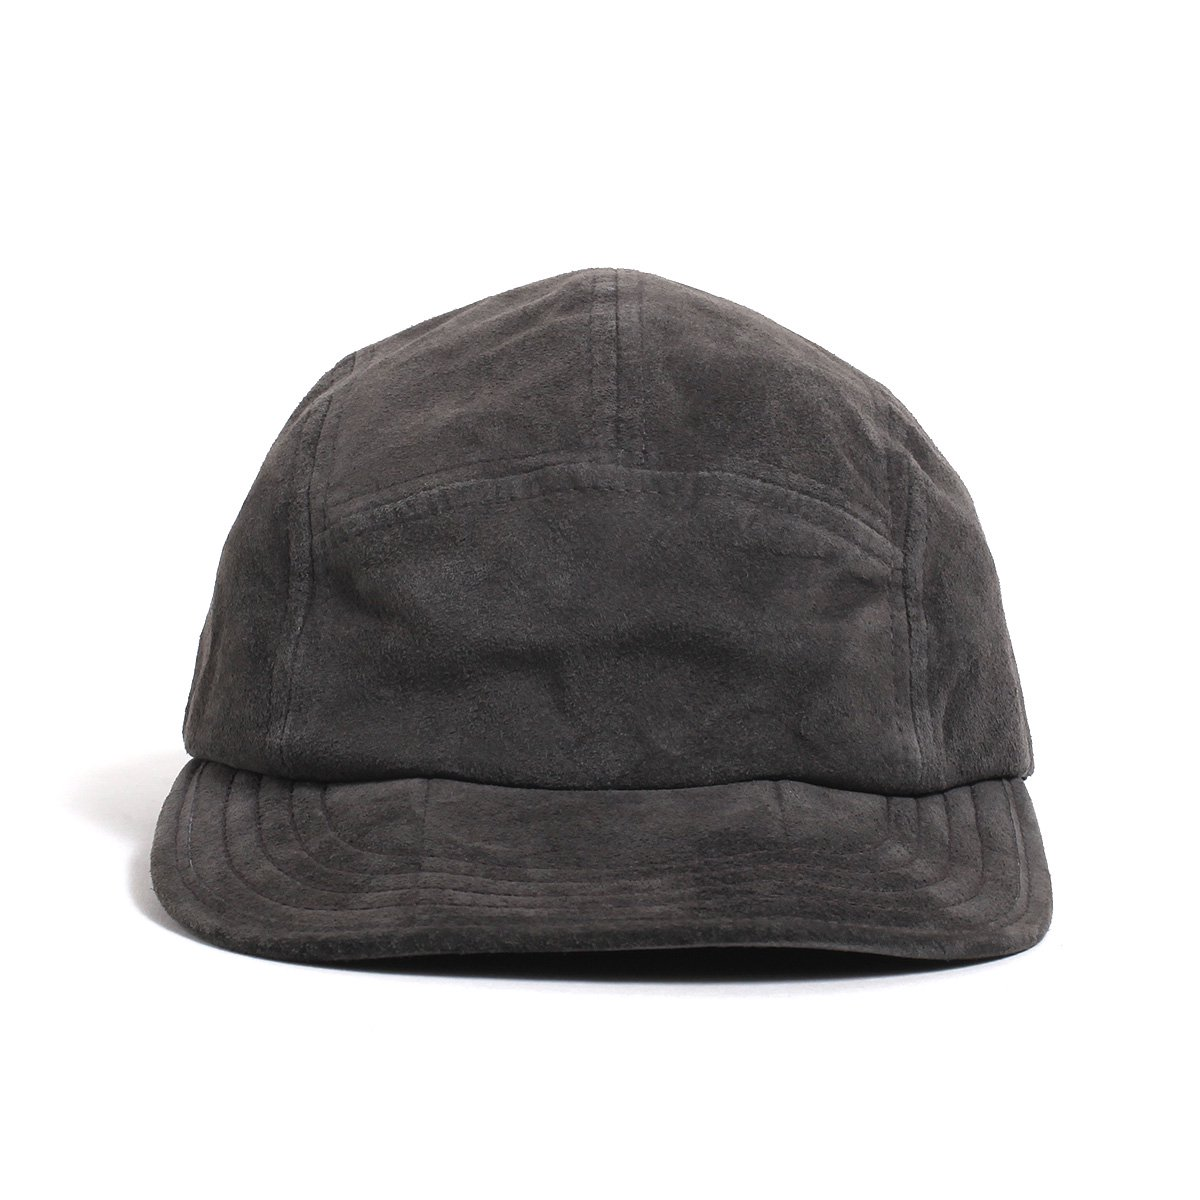 PIG SUEDE BILLS JETCAP 詳細画像2